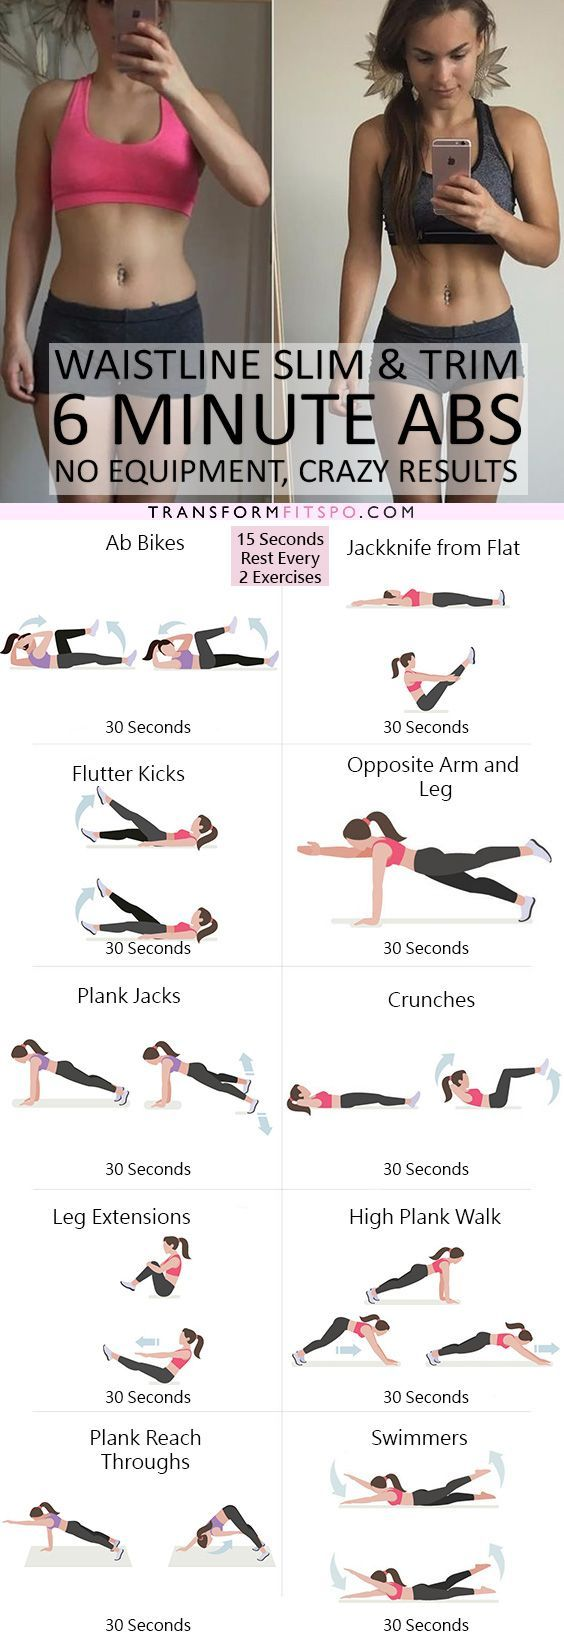 The Ultimate 6 Minute Abs Workout to Trim and Slim [AWESOME Results!]